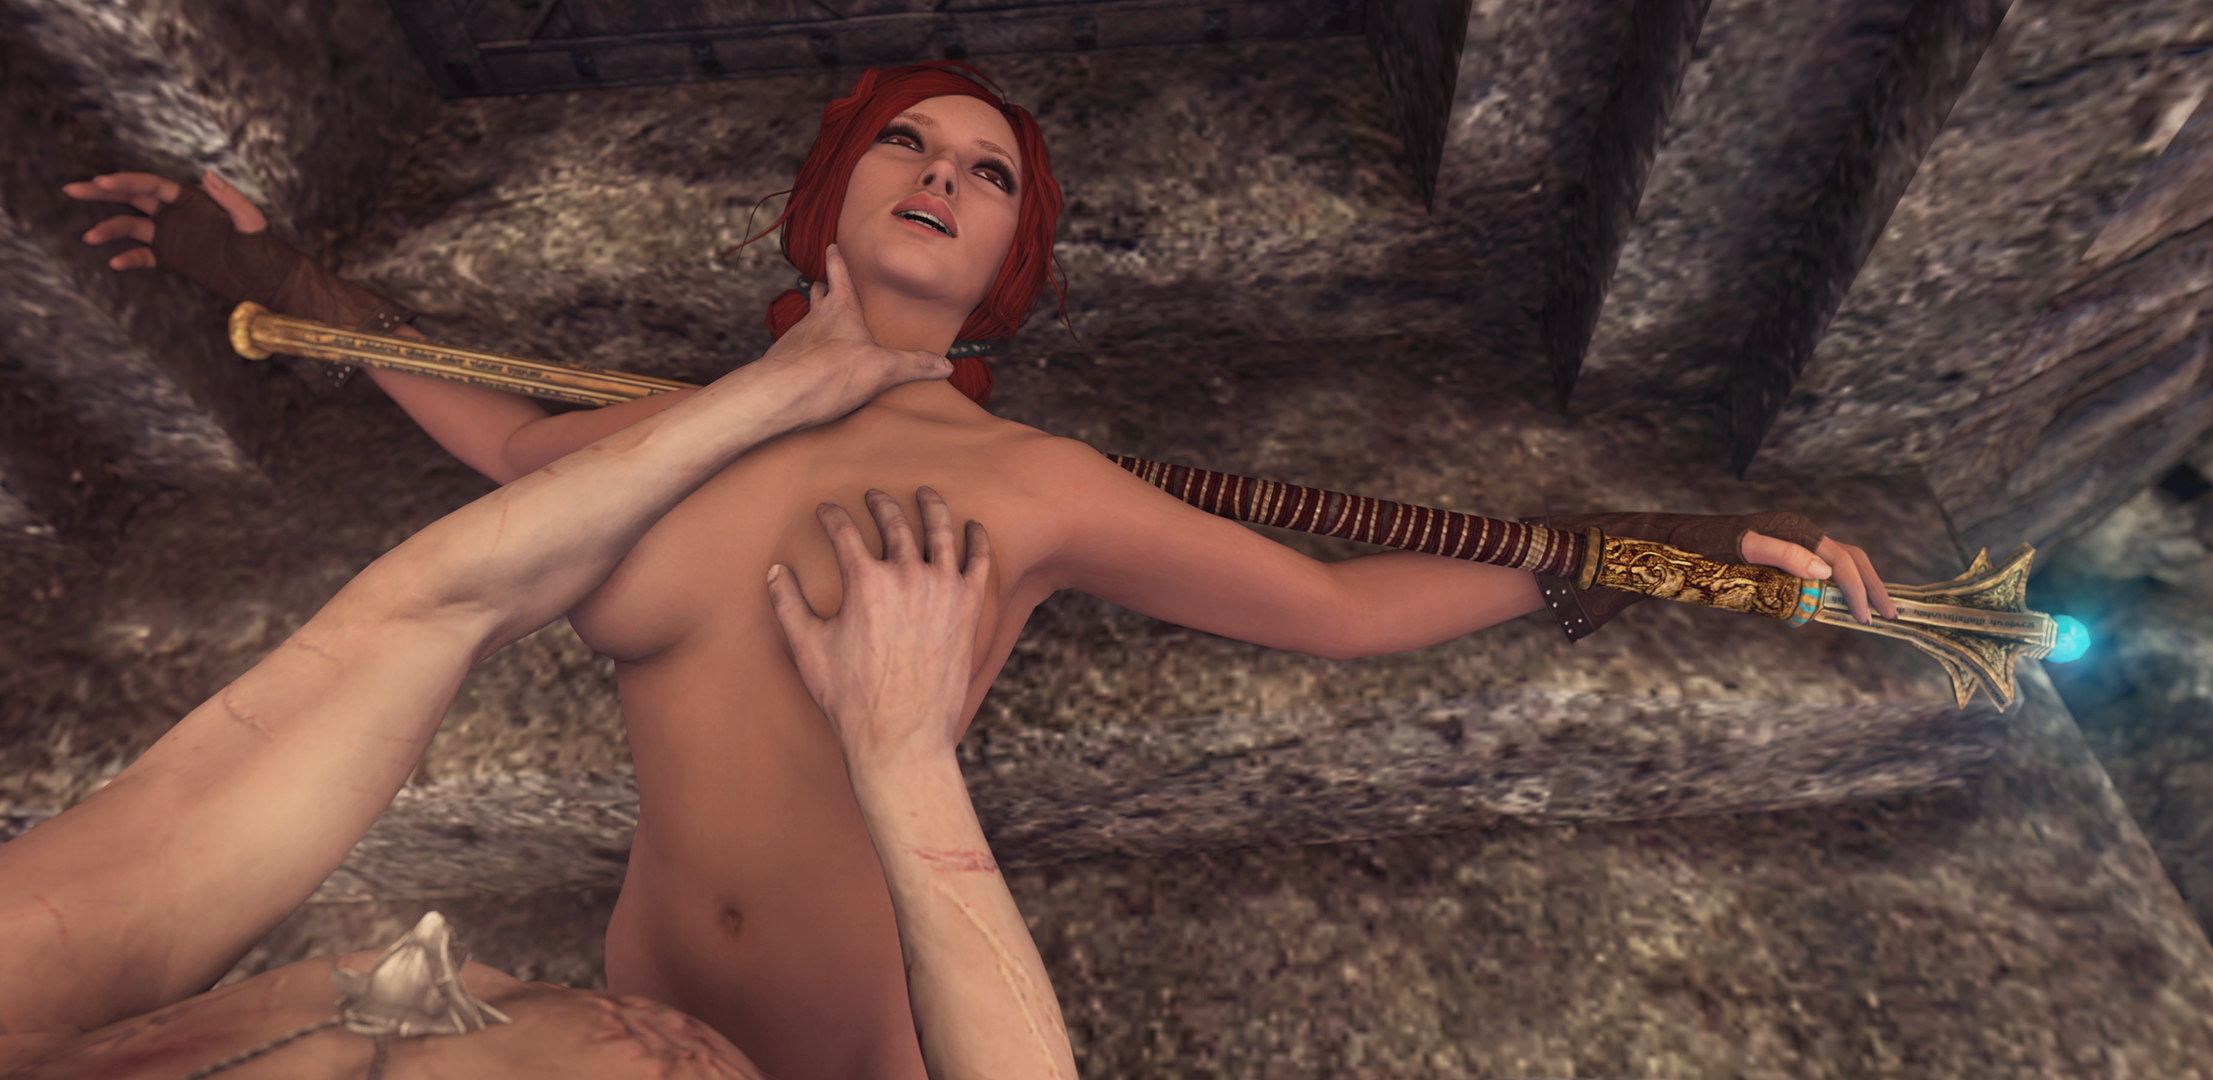 The witcher porn videos naked photos